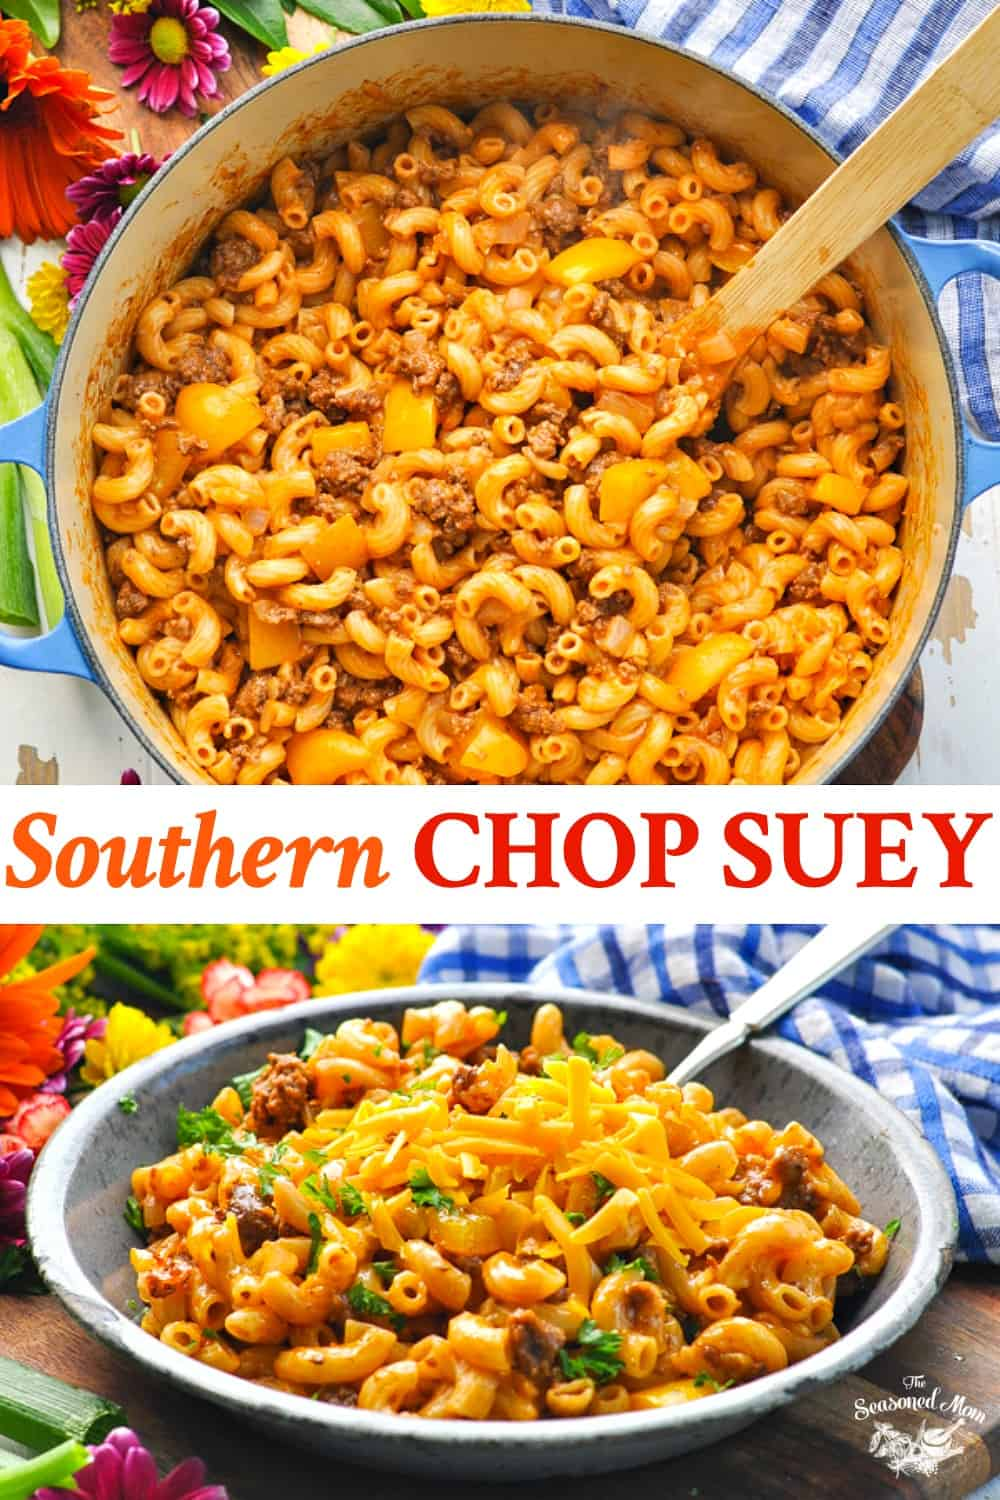 Long collage image of Southern Chop Suey